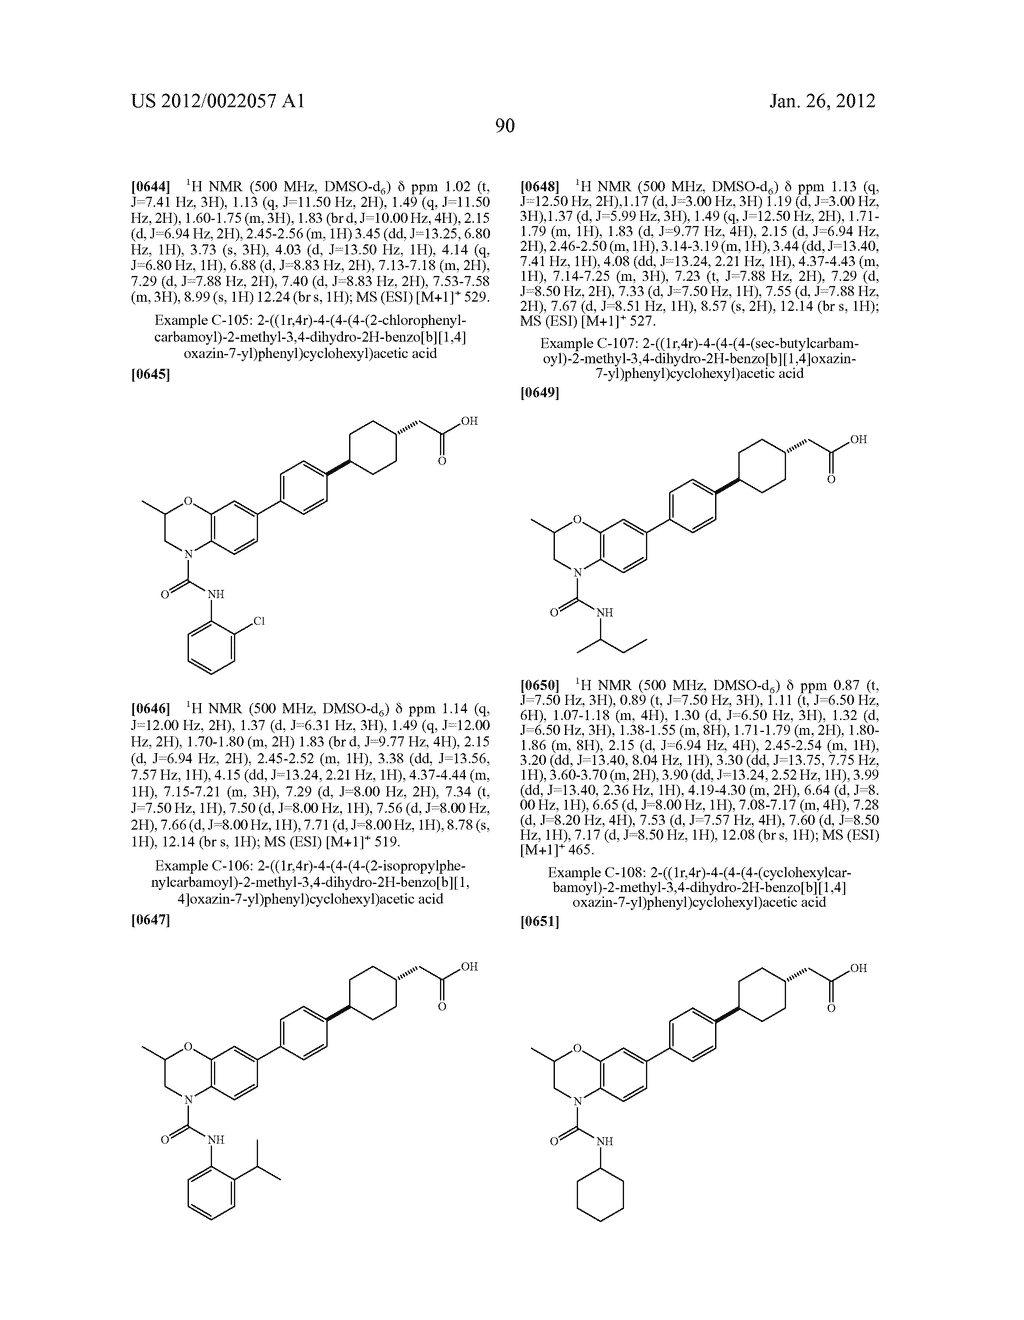 BICYCLIC COMPOUNDS AS INHIBITORS OF DIACYGLYCEROL ACYLTRANSFERASE - diagram, schematic, and image 91